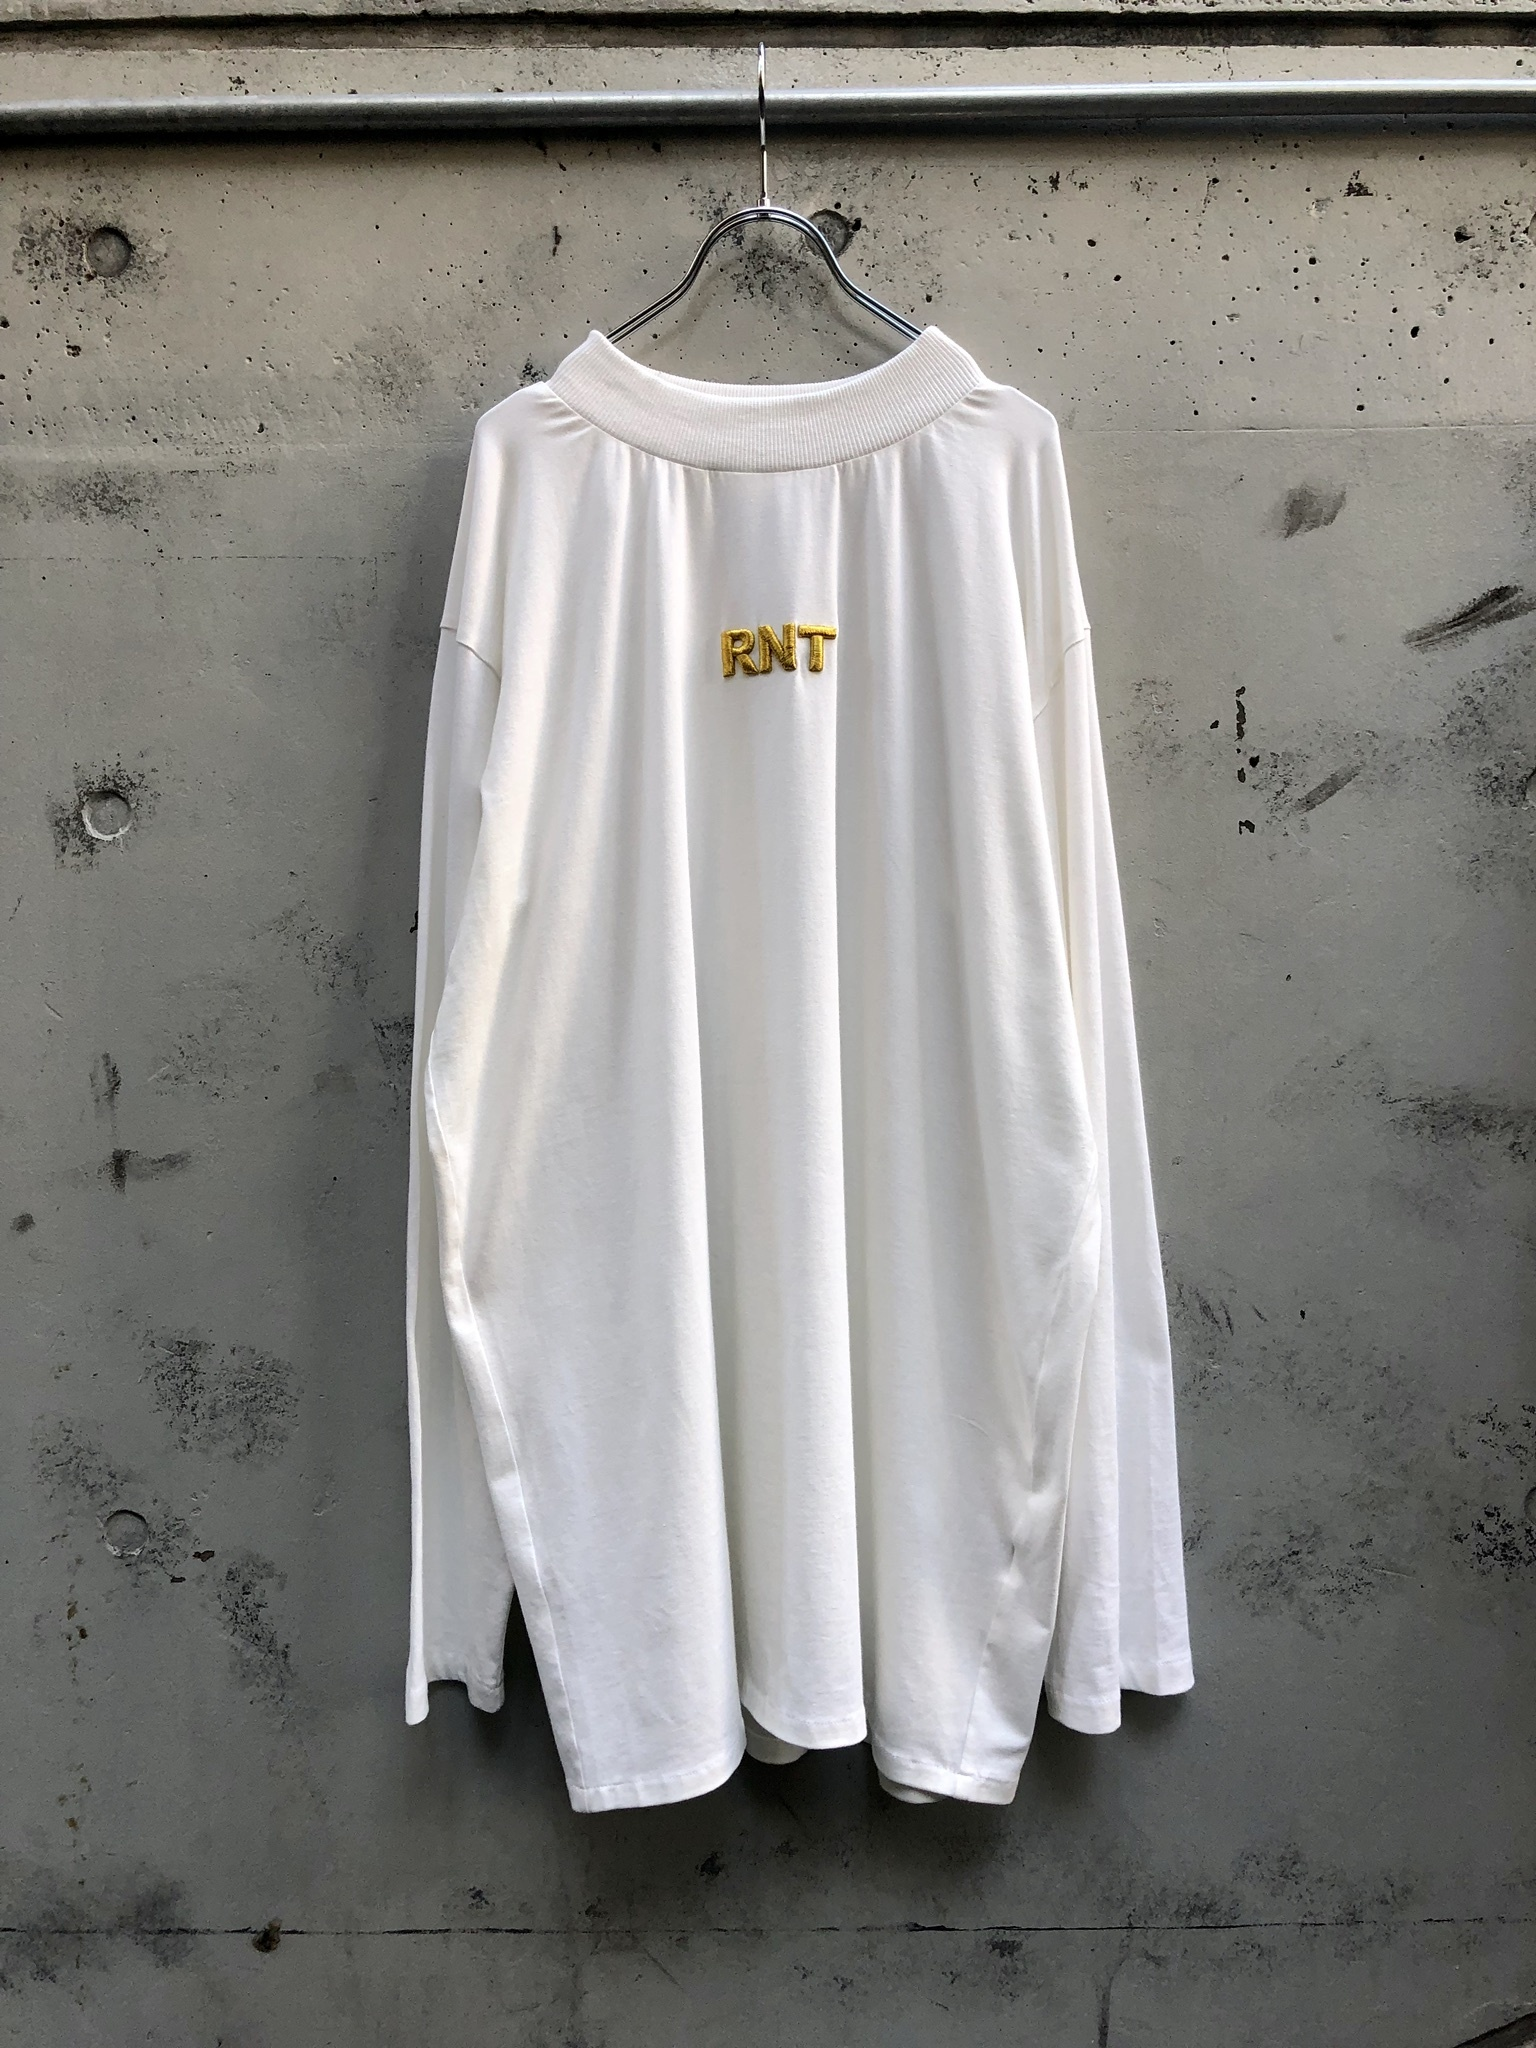 【RICE NINE TEN】HIGH NECK 3D RNT L/S TEE『white』